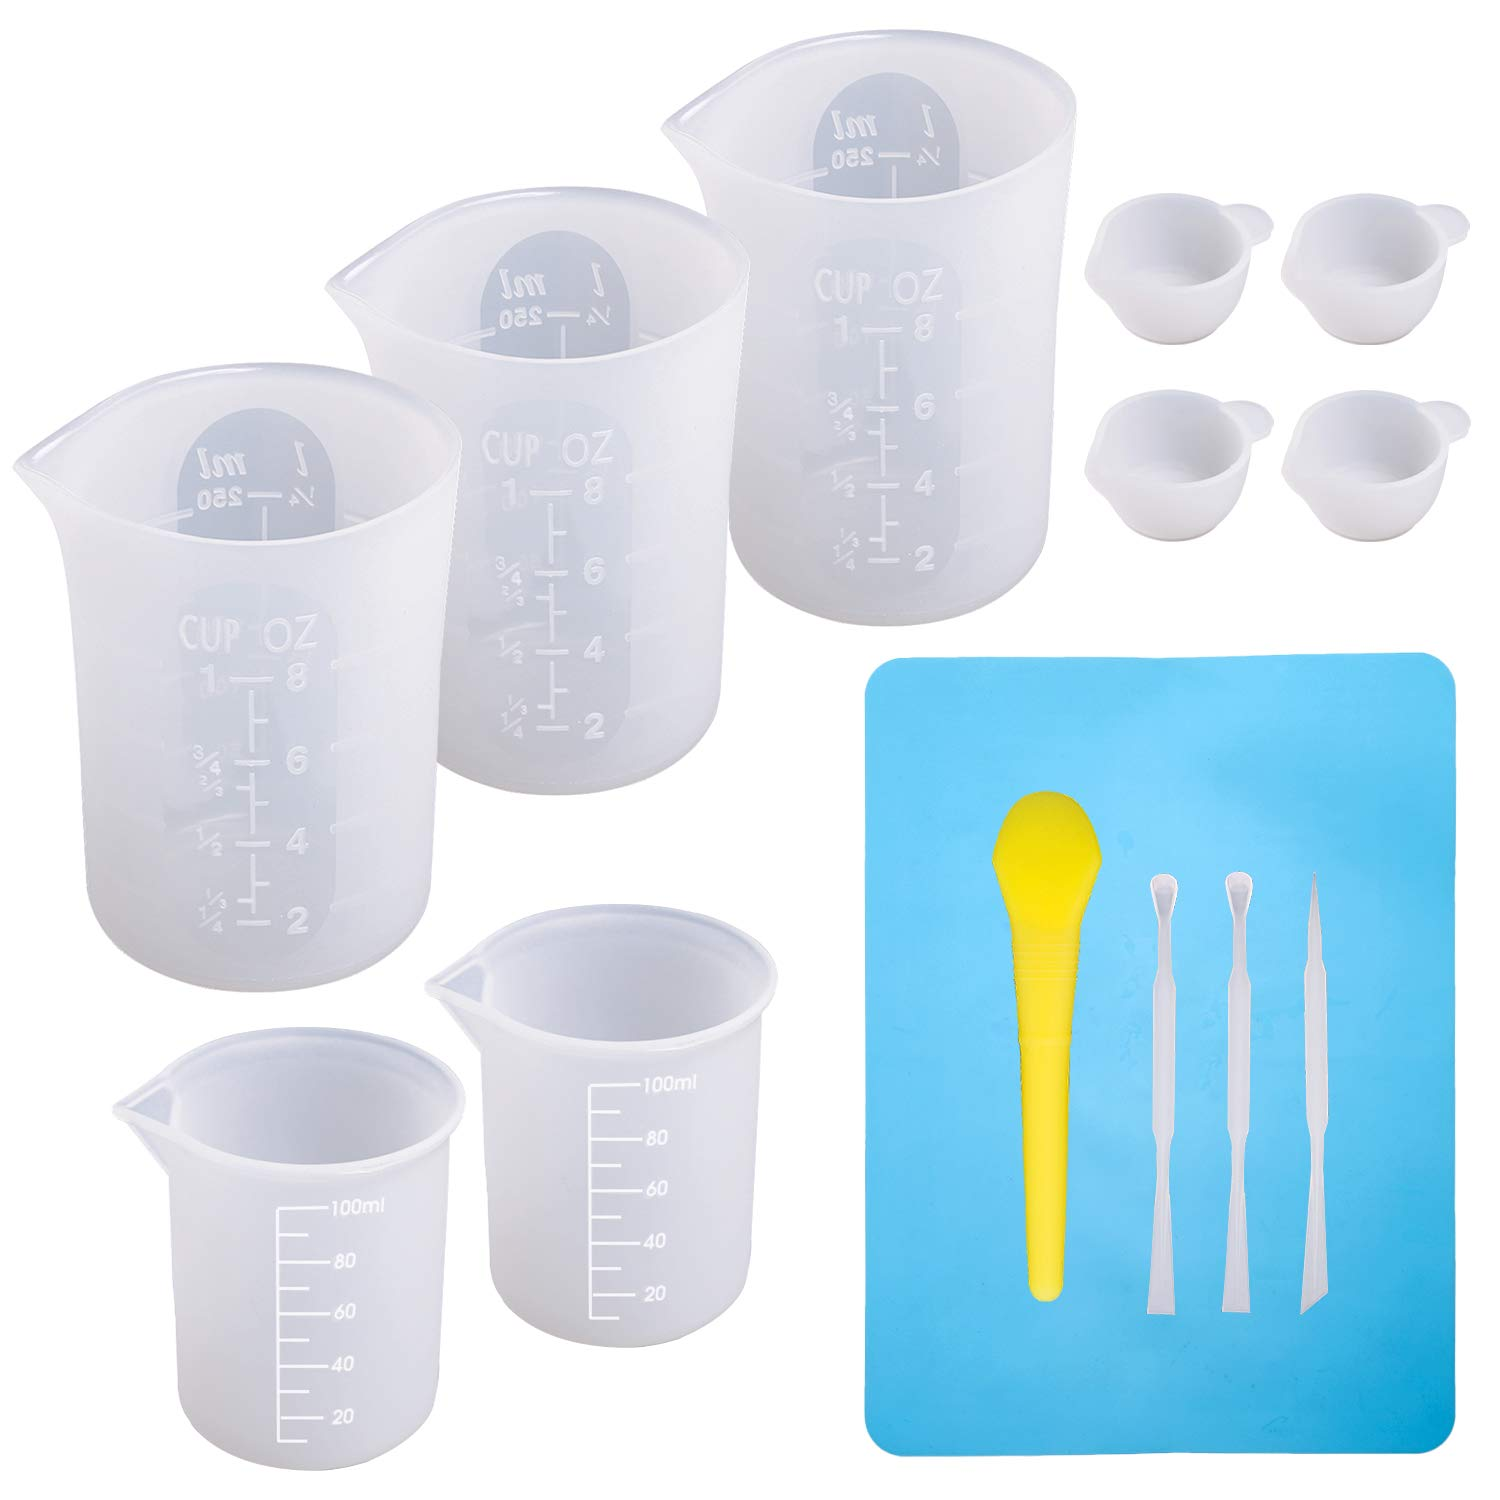 Large Silicone Measuring Cups and Tools Set Silicone Mixing Cups Stir Sticks Spoons Silicone Mat for Epoxy Resin Casting DIY Slime Art Making Waxing Kitchen by DECYOOL